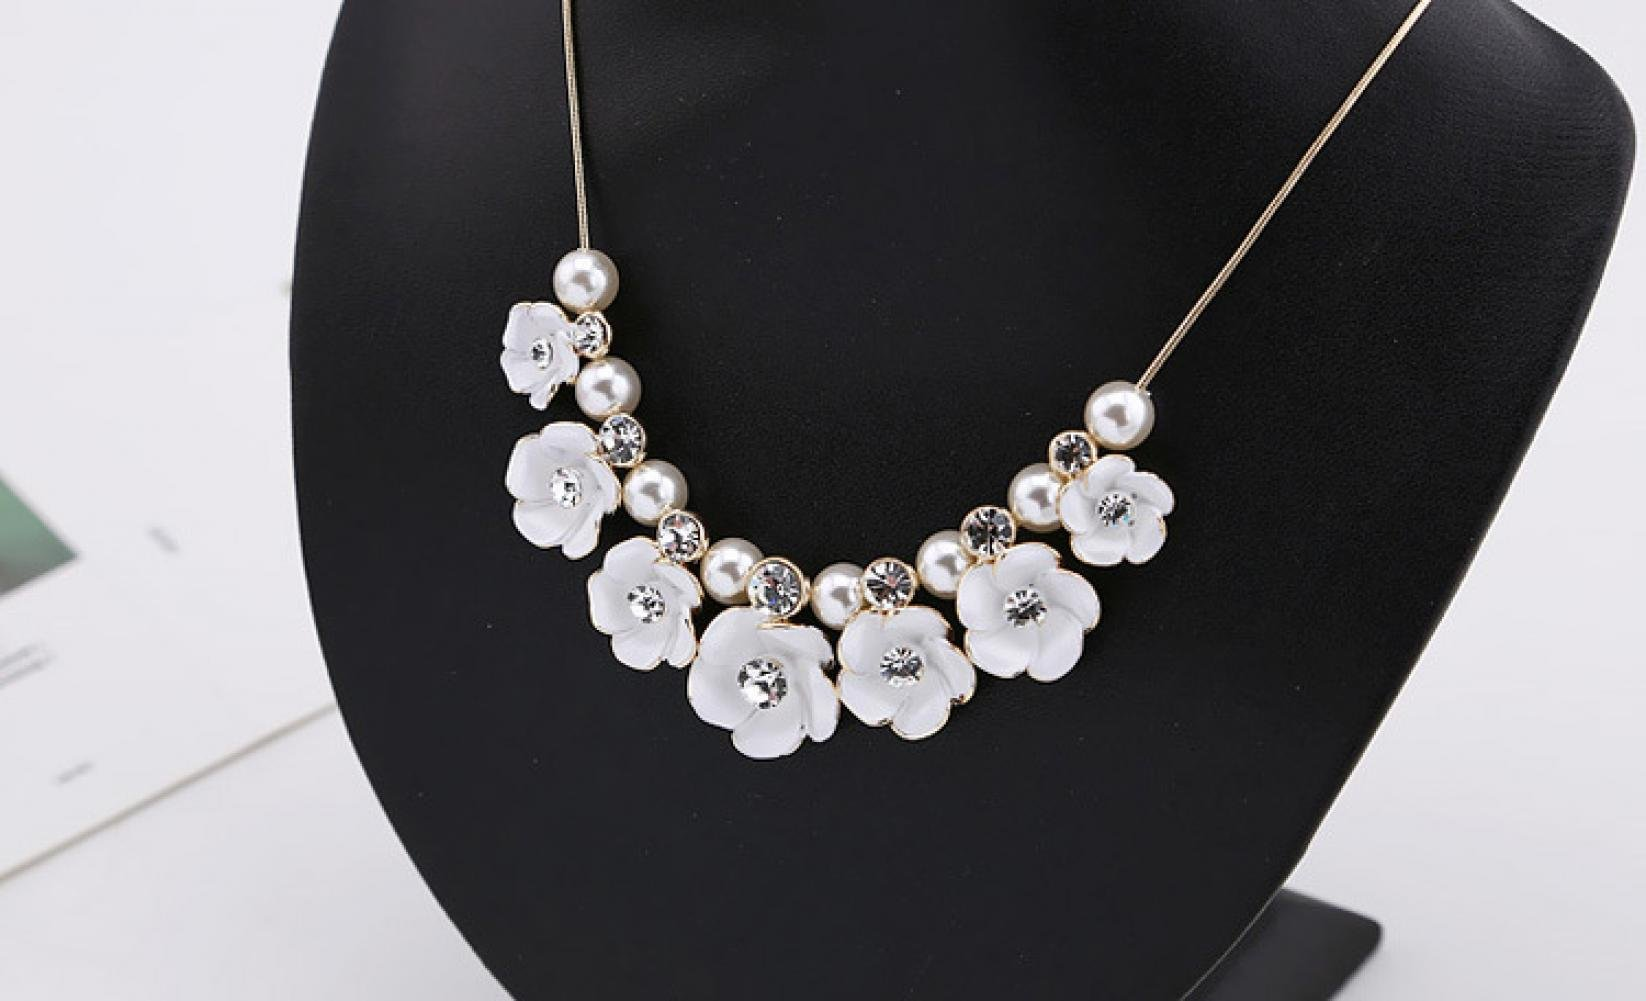 Anzona Fresh Elegant Flowers Pearl Necklace Lovely Short Jewelry Sweater Chain Female Clavicle Chain Dress Accessories